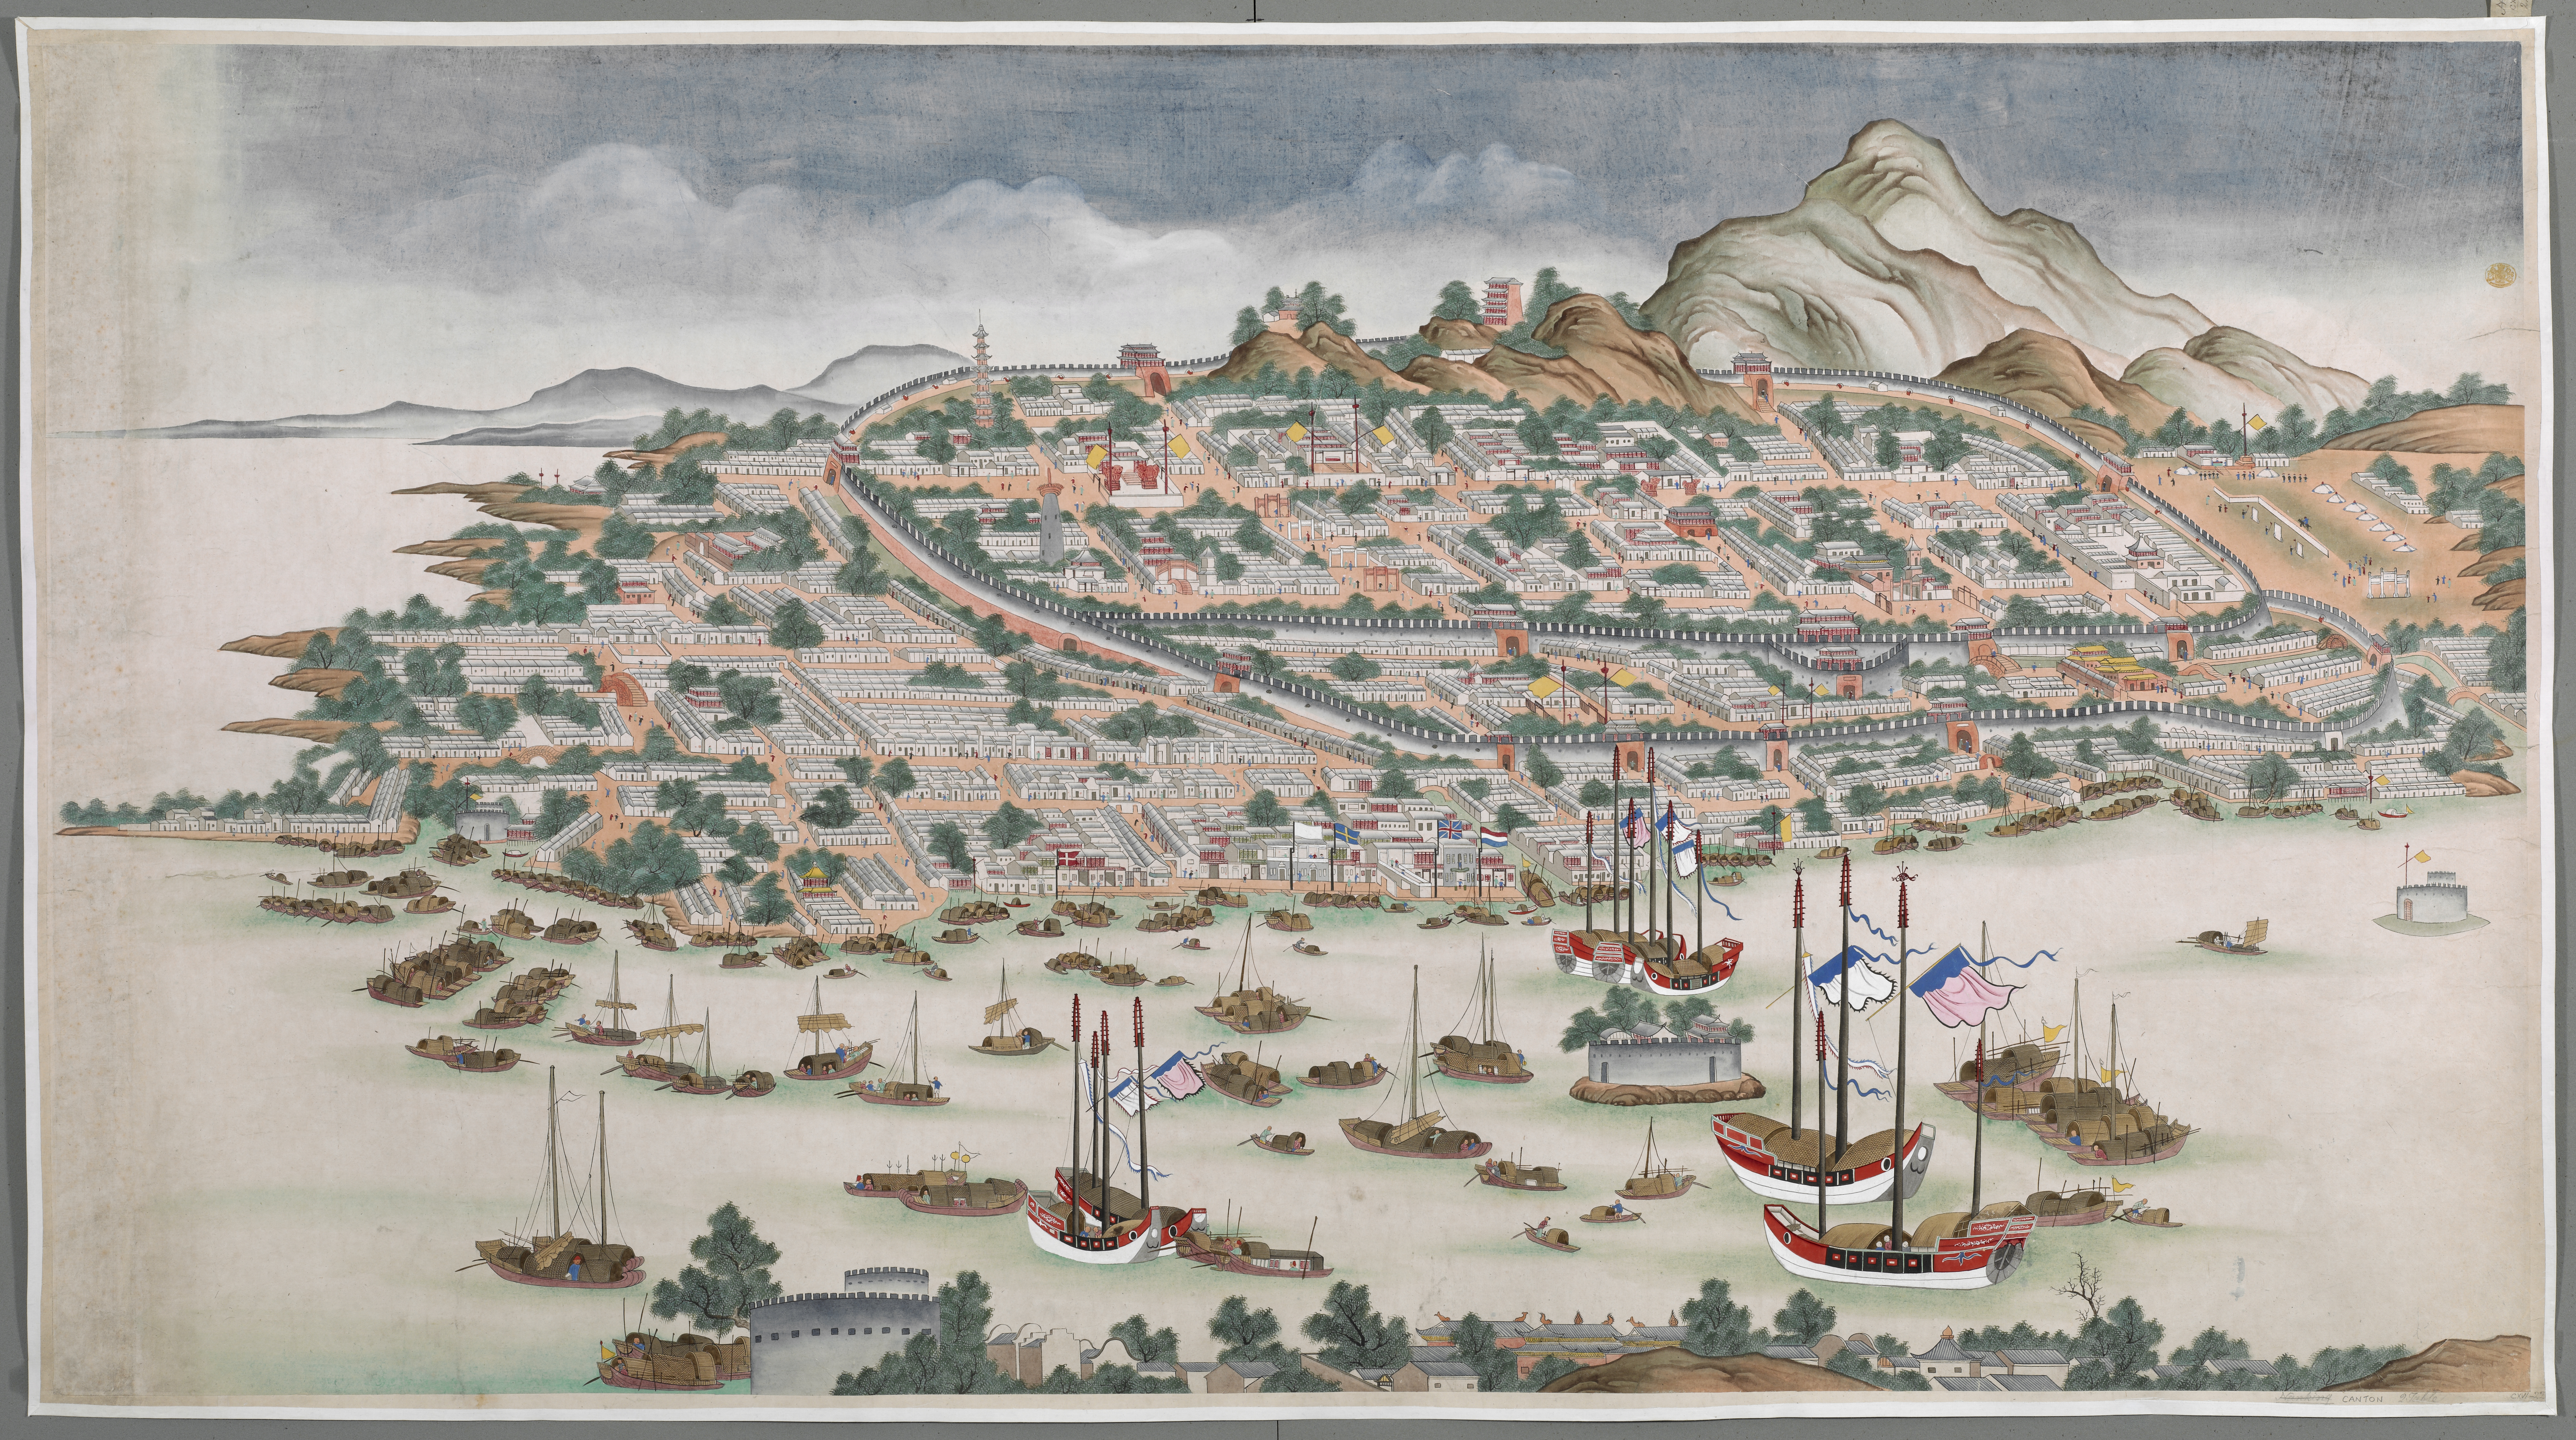 Bird's-eye view of Canton, with Chinese junks in Pearl River and harbour in the foreground, Western factories and New City beyond, and Old City within fortified walls and mountains in the background.